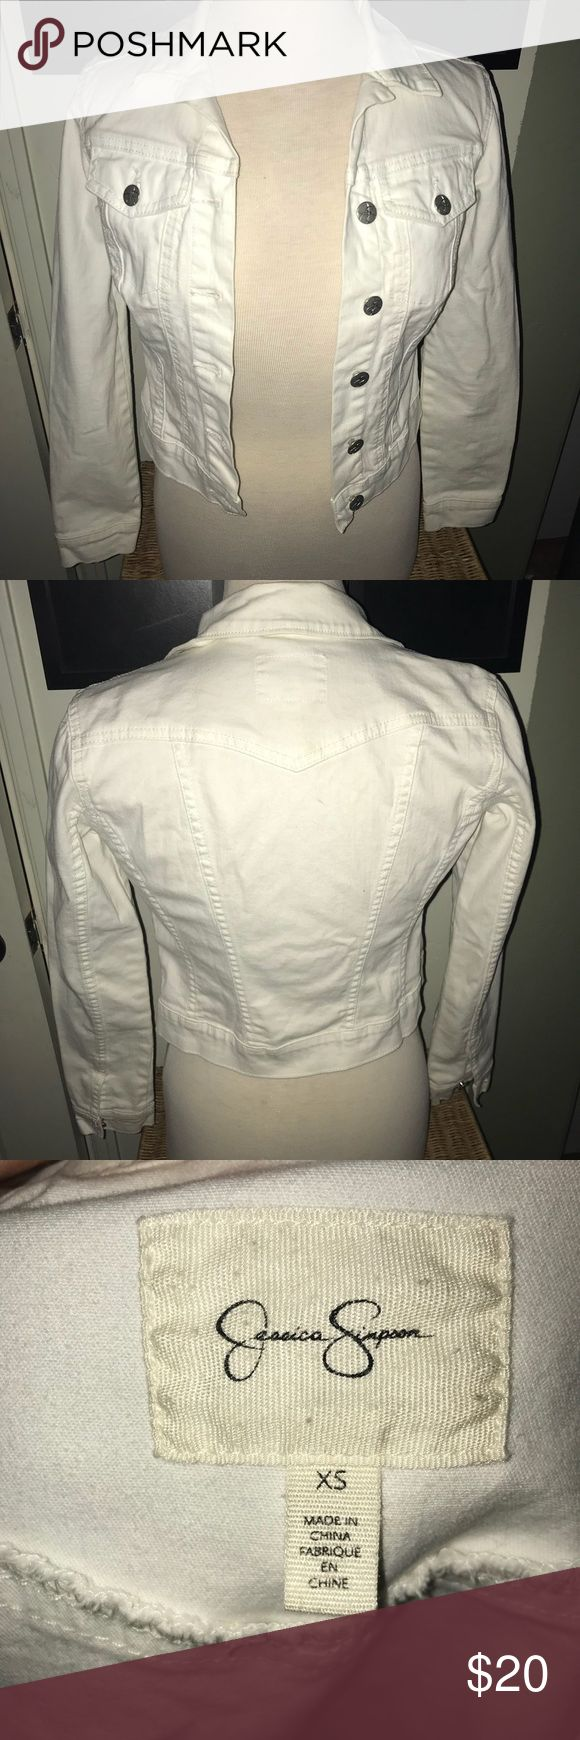 Ladies Jessica Simpson white Jean Jacket size XS Ladies or teen Jessica Simpson white Jean Jacket size XS  For teens might fit small/medium depending on fit Jessica Simpson Jackets & Coats Jean Jackets